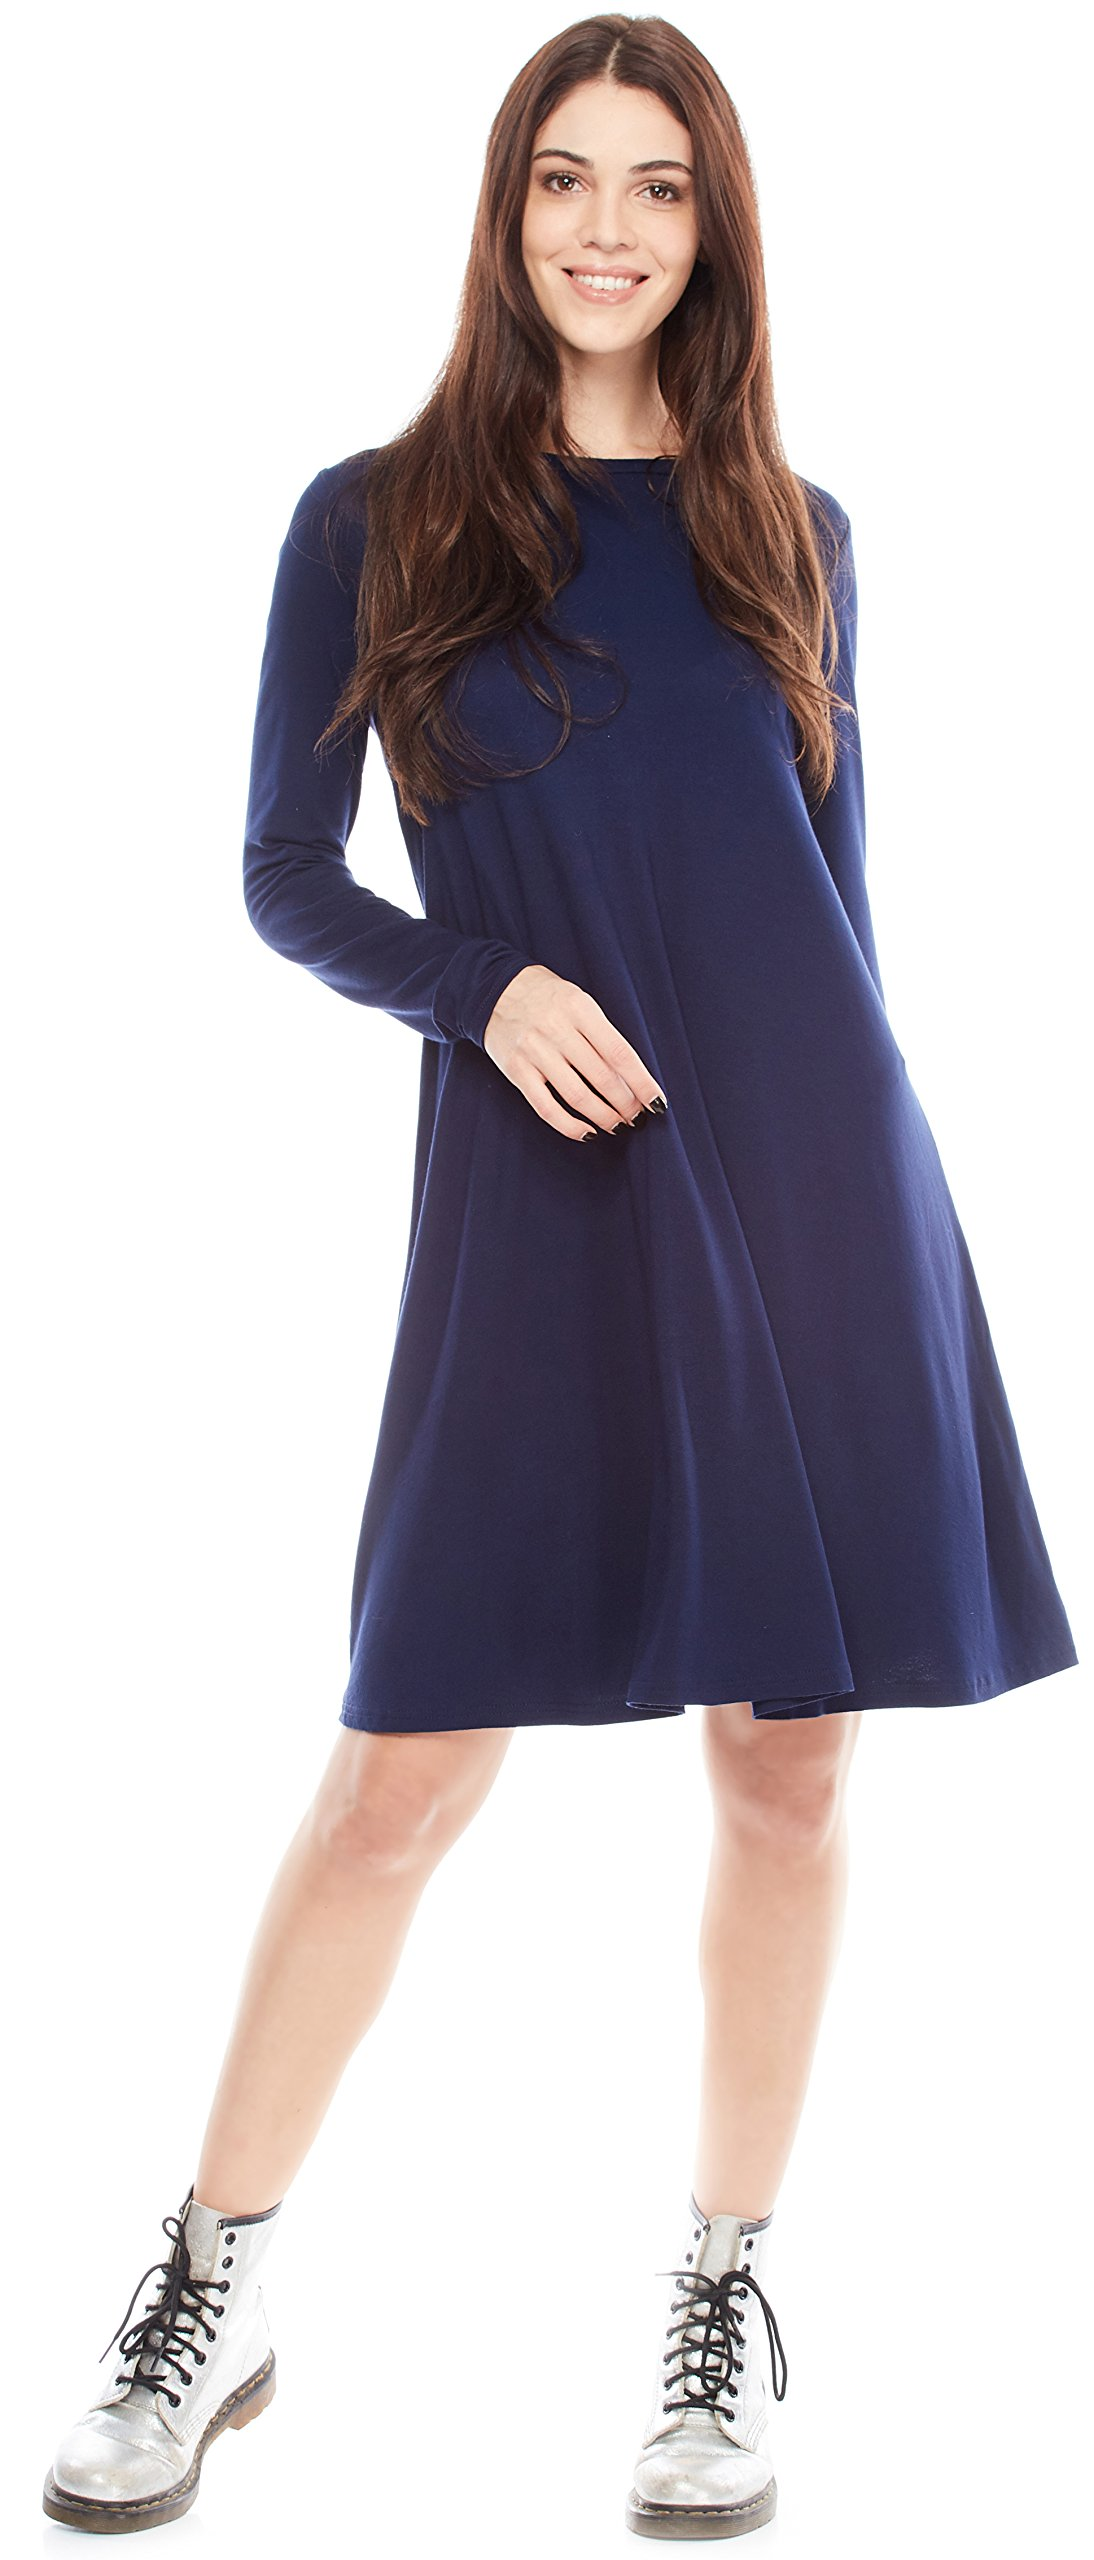 Certain Lady Women's Elegant Long Sleeve Loose Dress by Perfect for Office - Casual or Semi Formal Style by Certain Lady